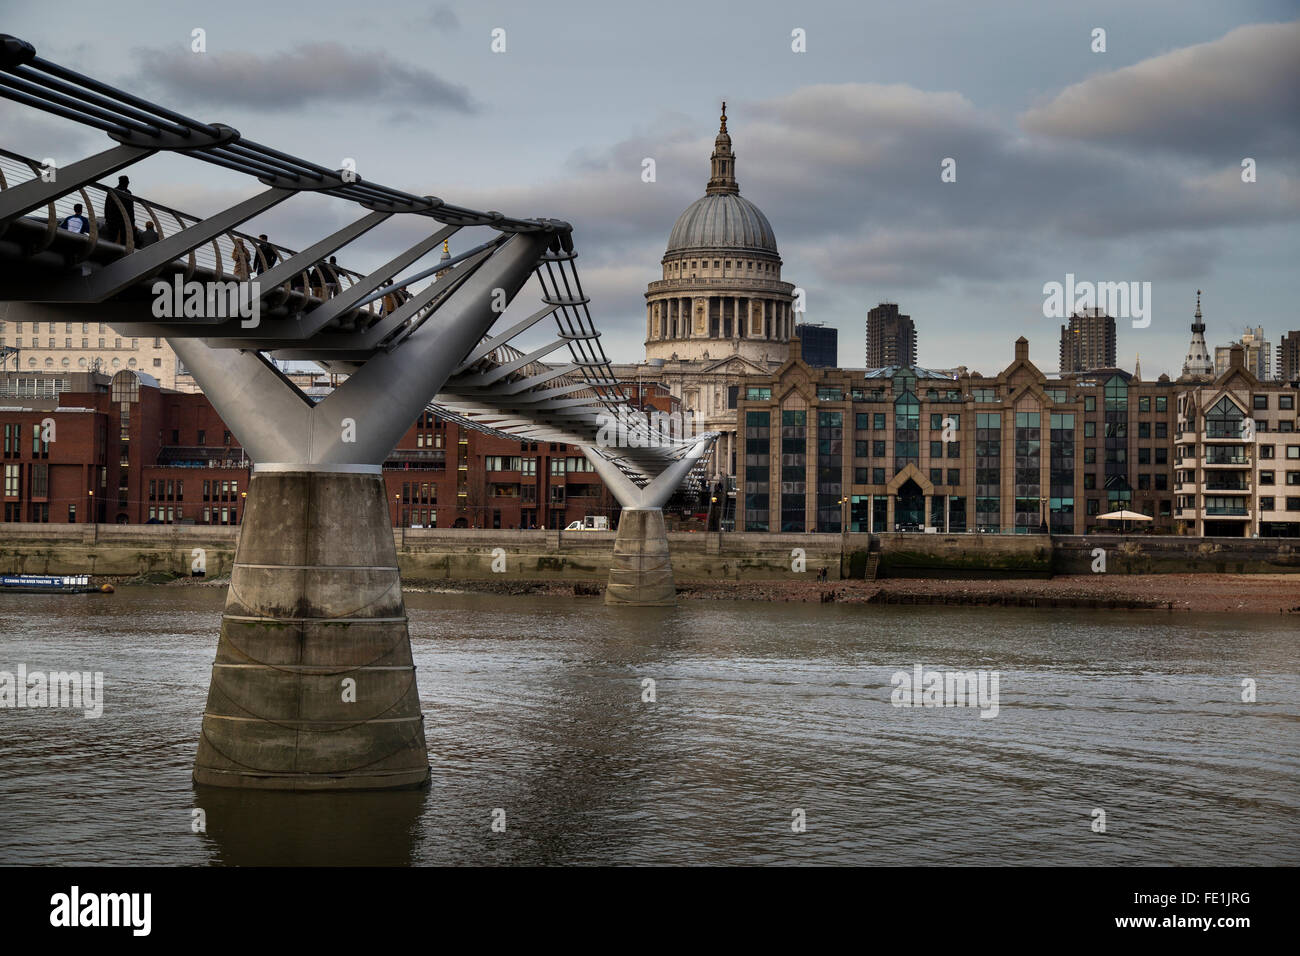 St. Pauls Cathedral and the Millennium Bridge - Stock Image